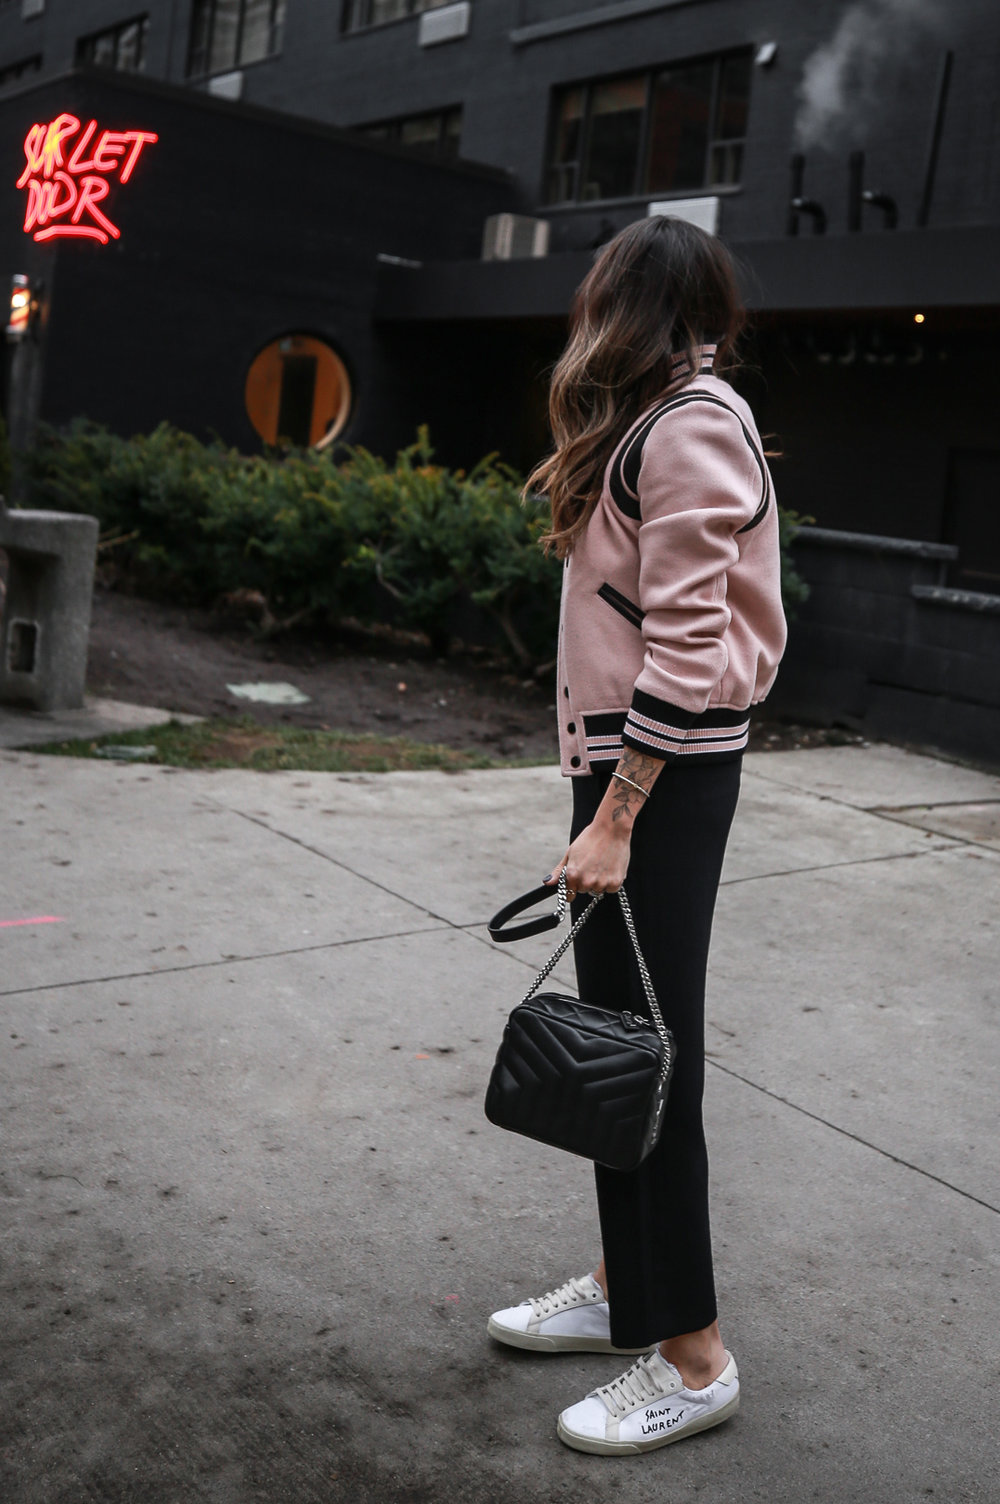 Nathalie Martin wearing Saint Laurent pink Teddy Jacket, YSL Lou Lou small bowling bag, white canvas sneakers, Aritzia Jallade Pant, street style, woahstyle.com_4003-2.jpg